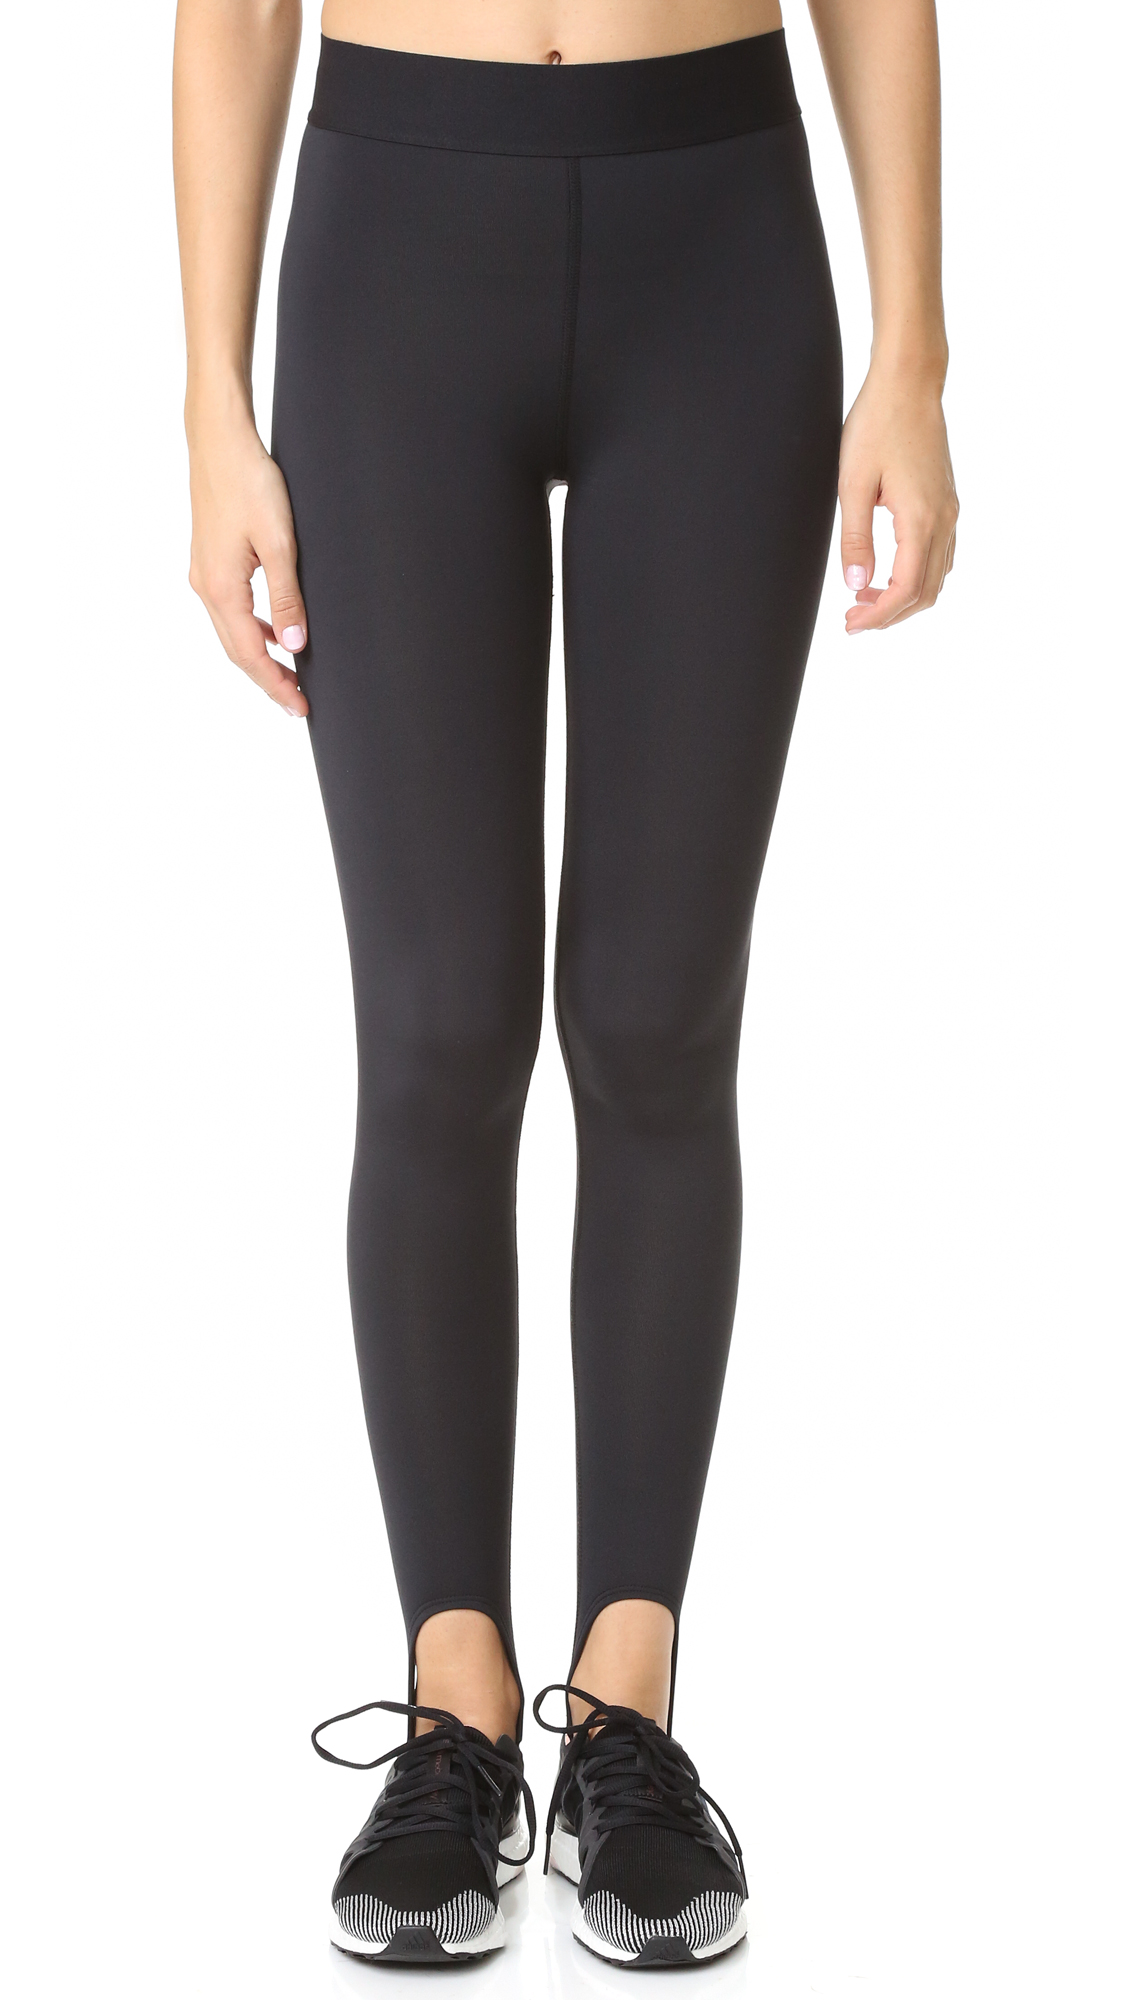 Sleek Heroine Sport stirrup leggings. Exposed elastic waistband with logo patch. Fabric: Ponte jersey. 90% polyester/10% spandex. Wash cold. Made in the USA. Measurements Rise: 11.5in / 29cm Inseam: 25.25in / 64cm Measurements from size S. Available sizes: S,